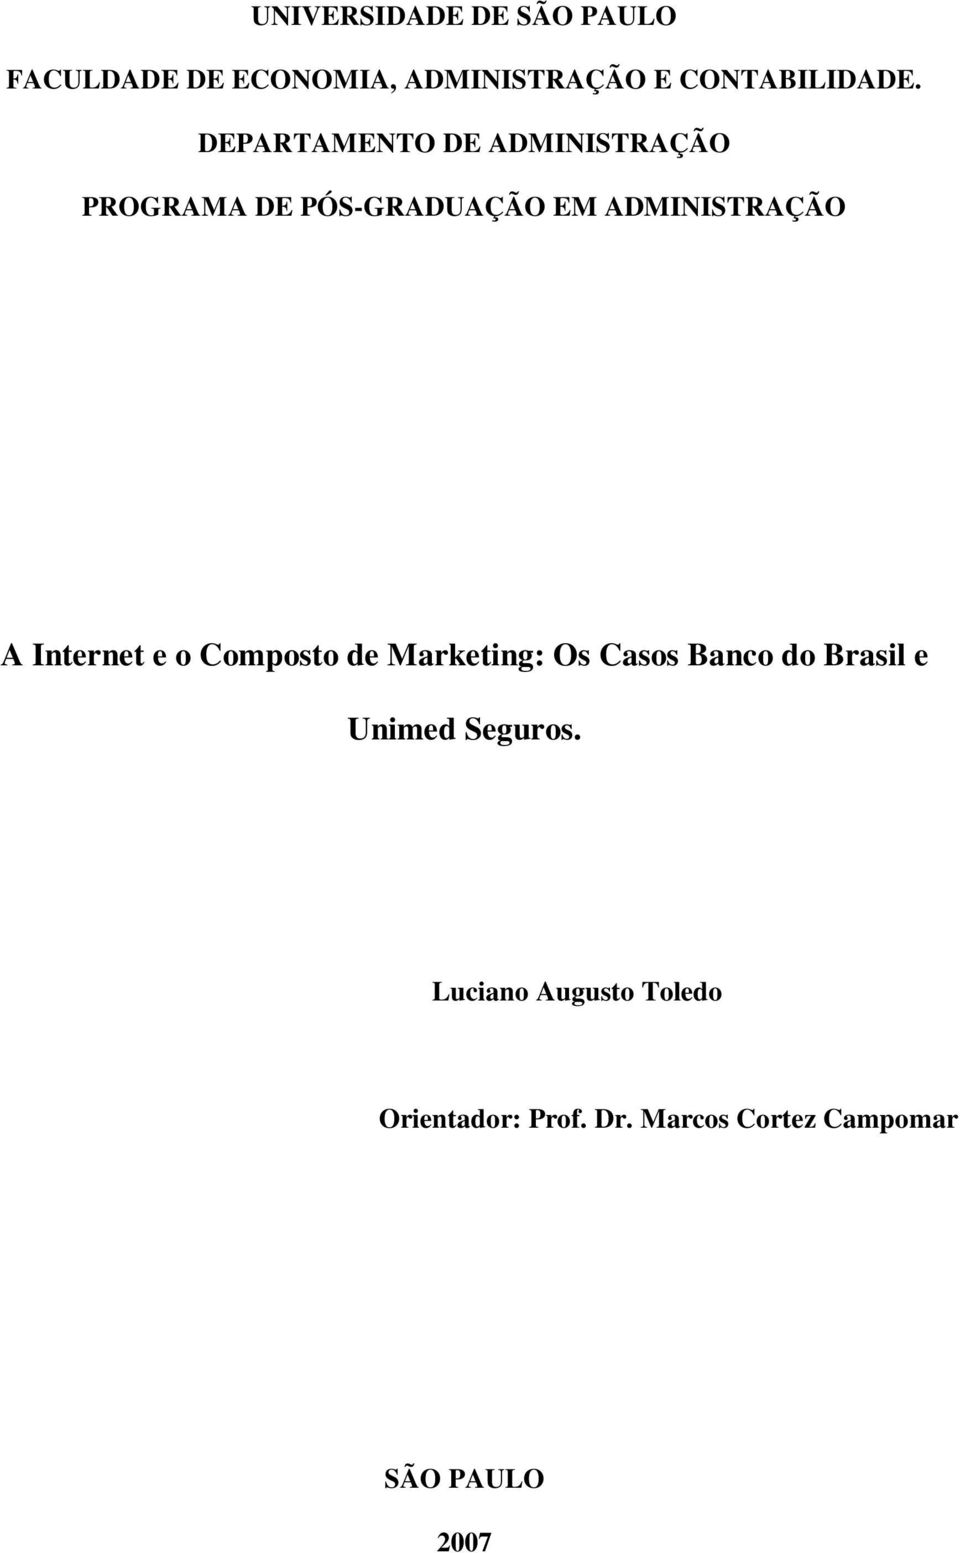 Internet e o Composto de Marketing: Os Casos Banco do Brasil e Unimed Seguros.